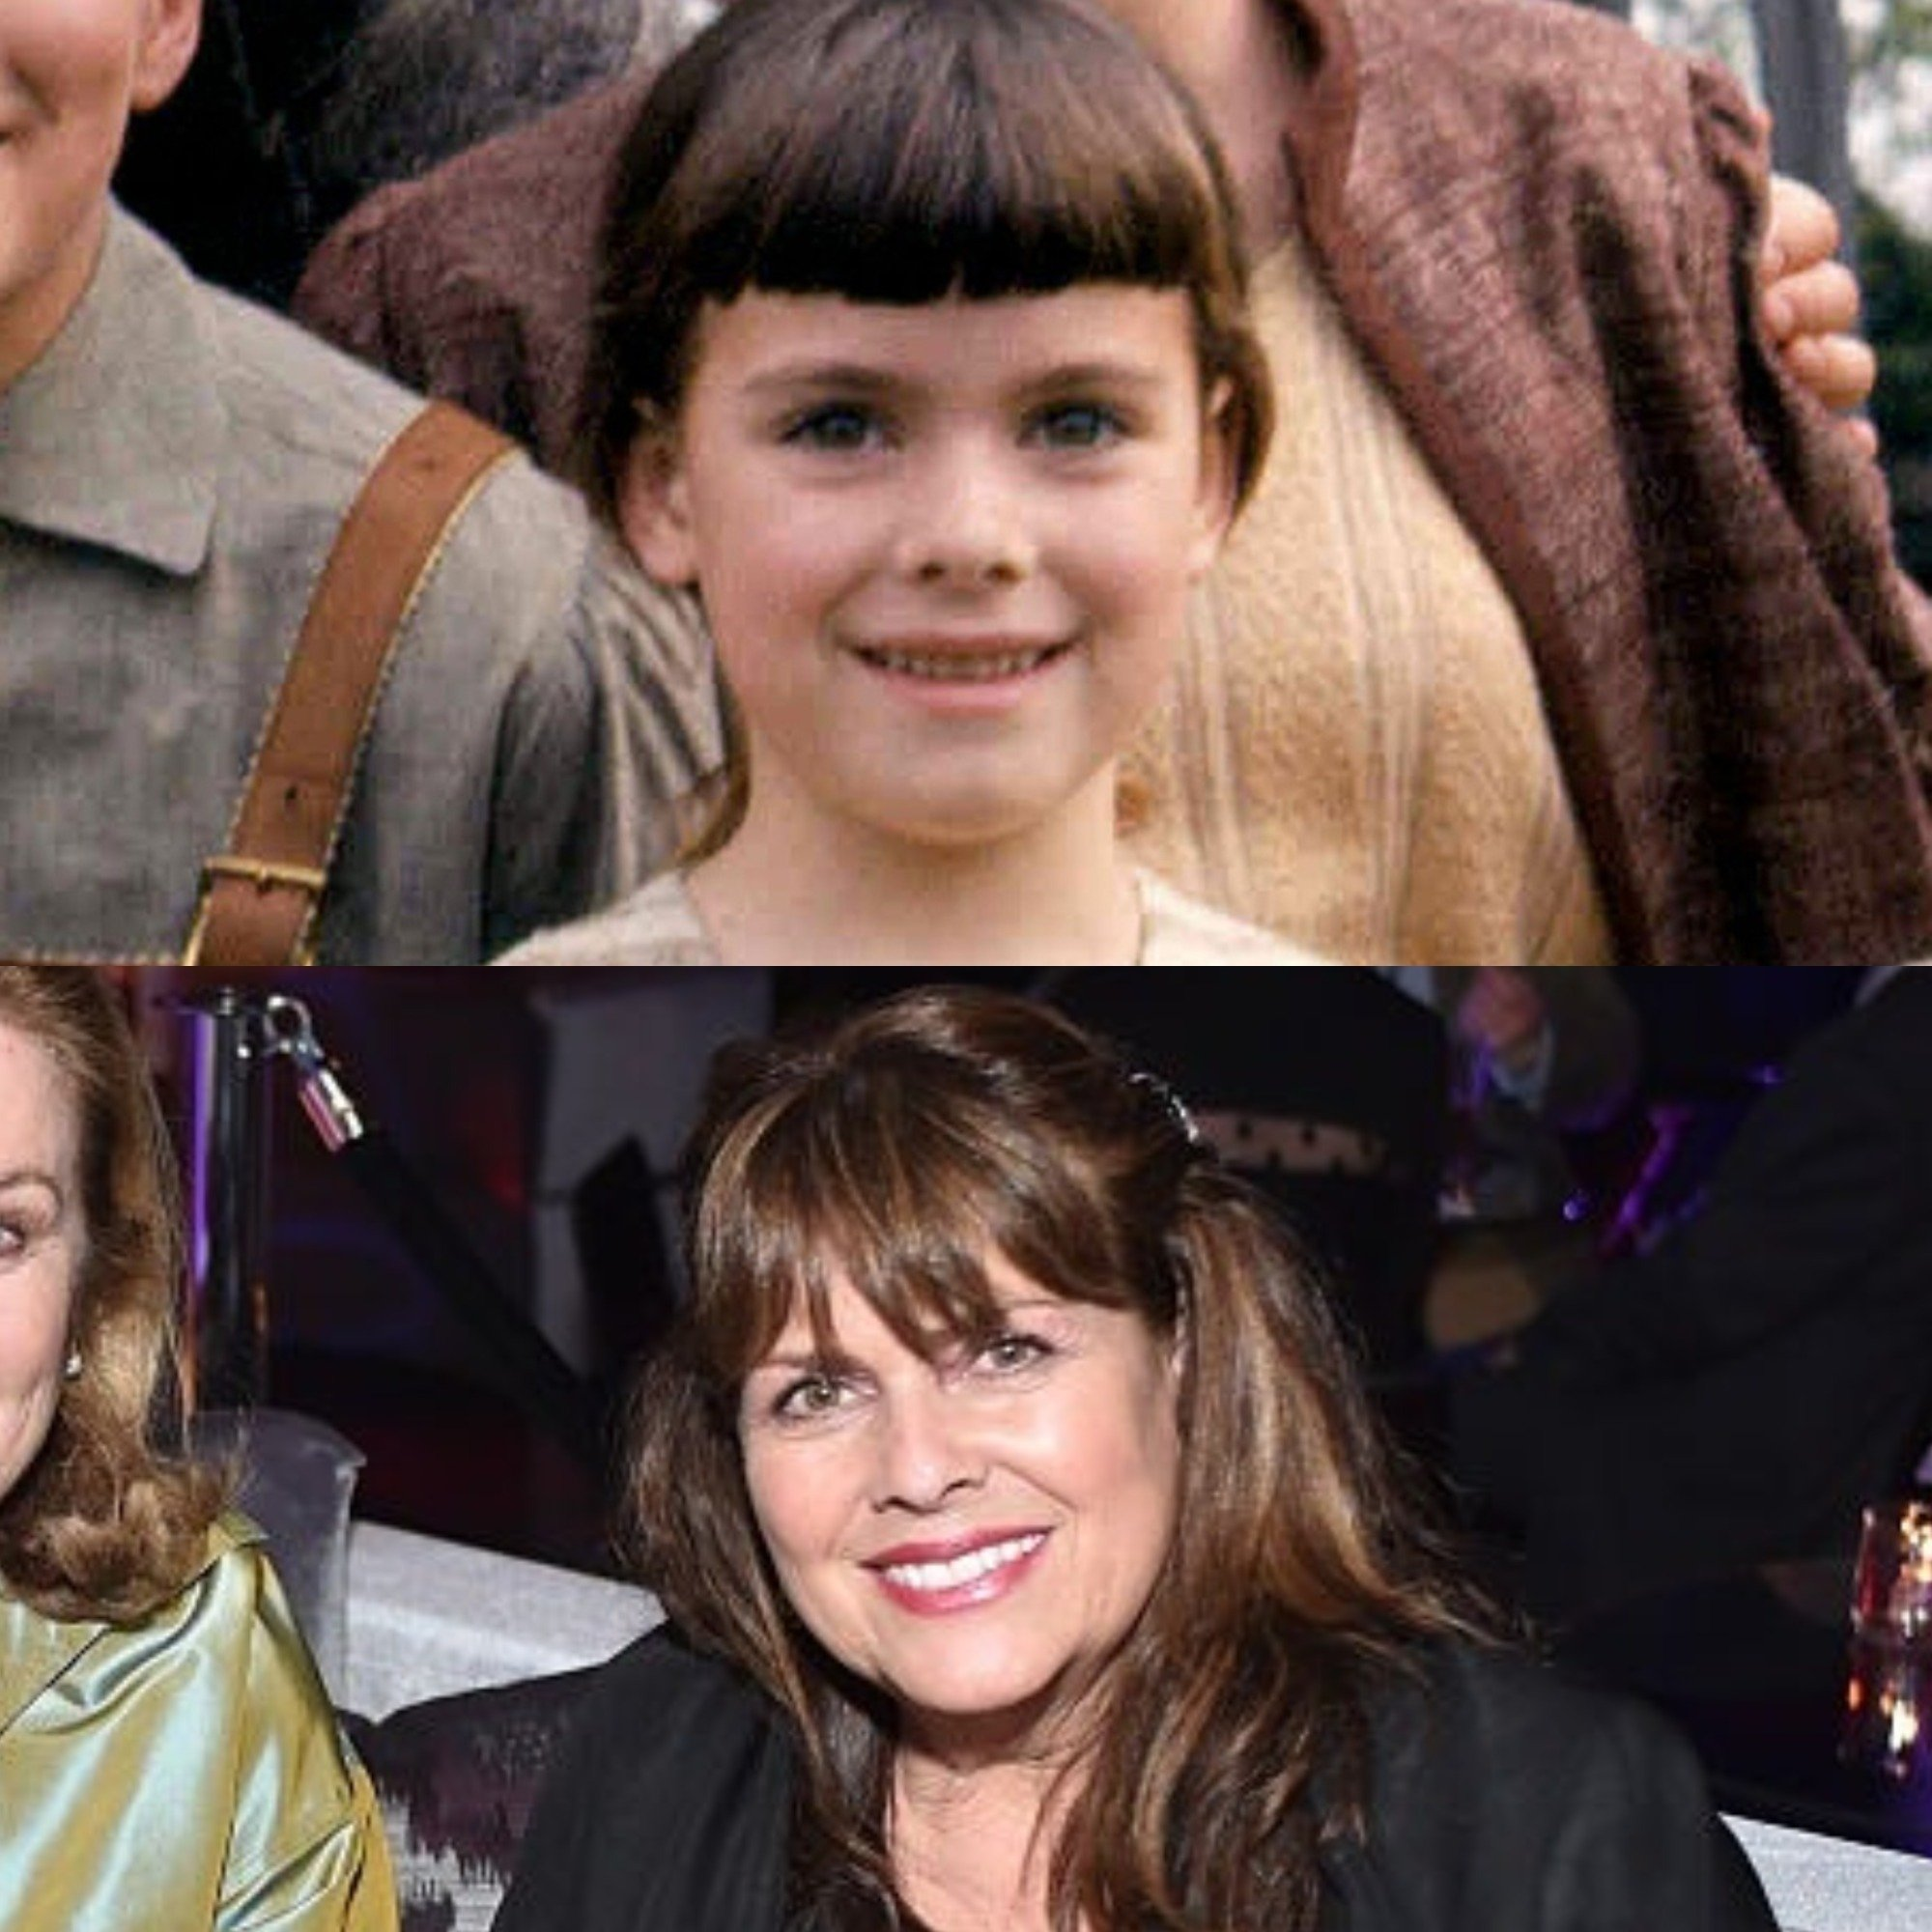 Image credits: 20th Century Studios/The Sound of Music - Getty Images/WireImage/Stefanie Keenan